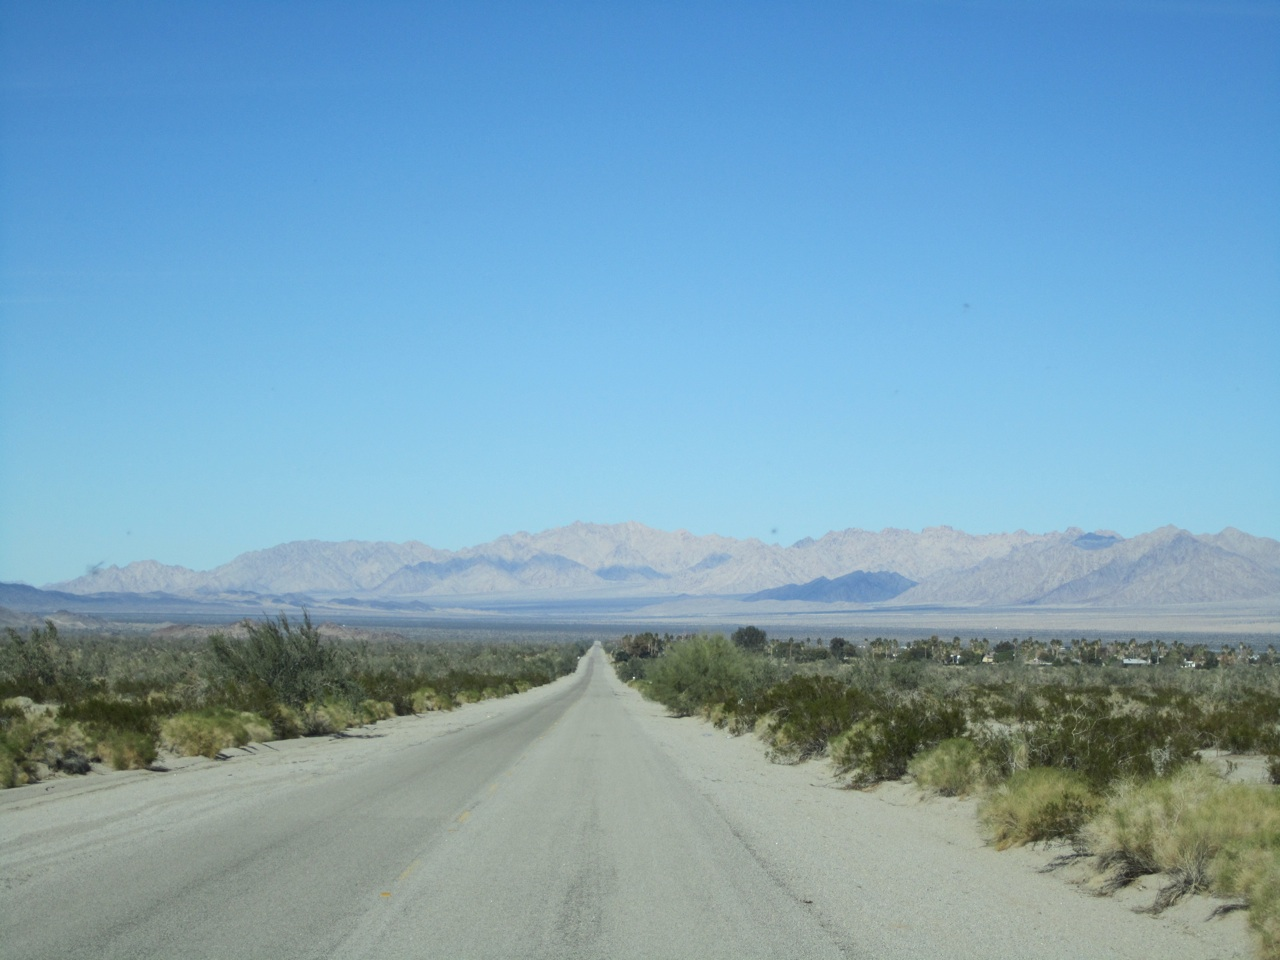 The Road Heading To Lake Tamarisk RV Resort. You Start To Wonder What You Got Yourself Into.